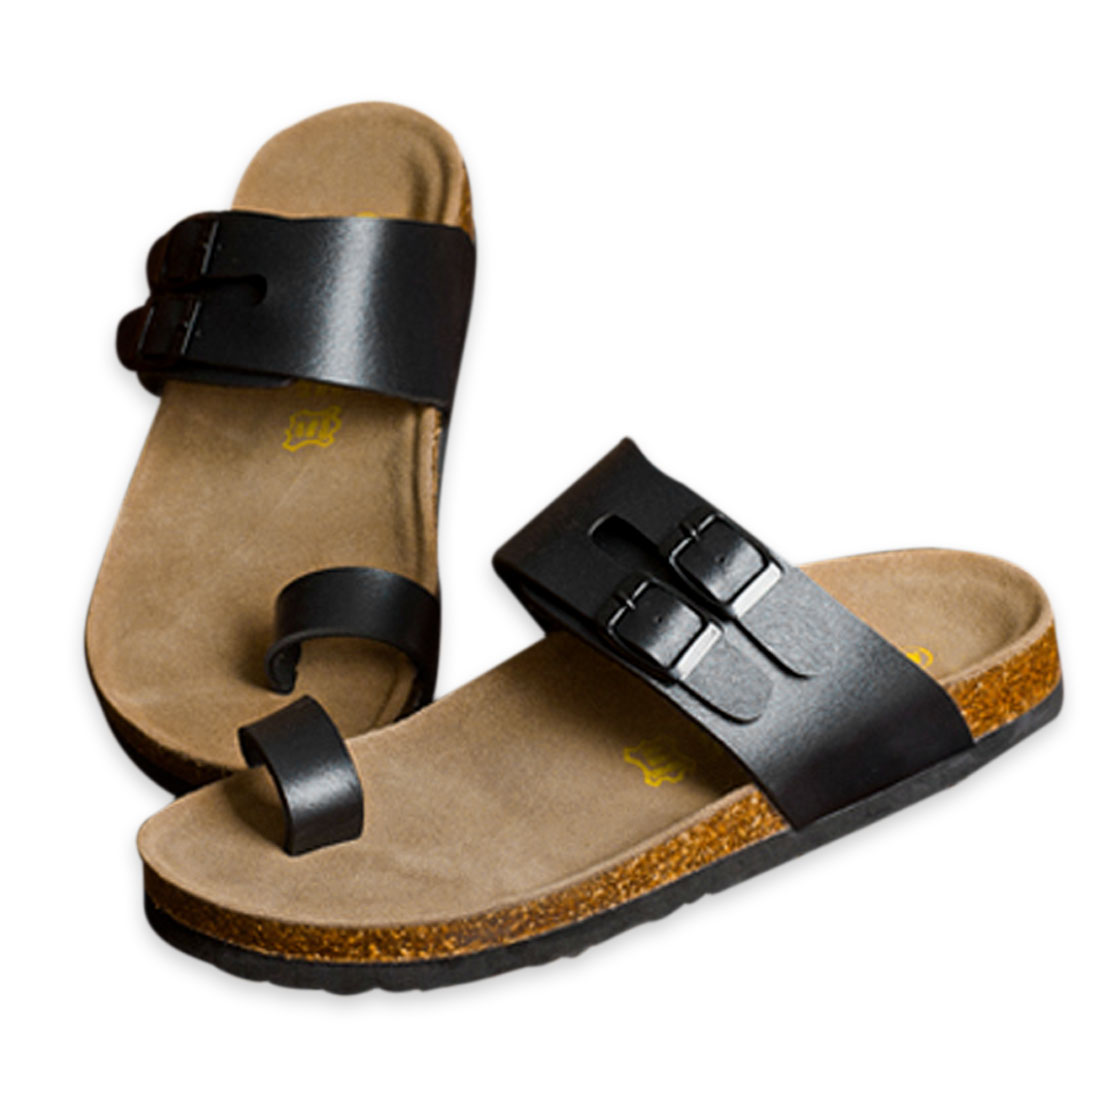 Black Featuring Style Fashionable Summer Sandal for Men 10 US Size